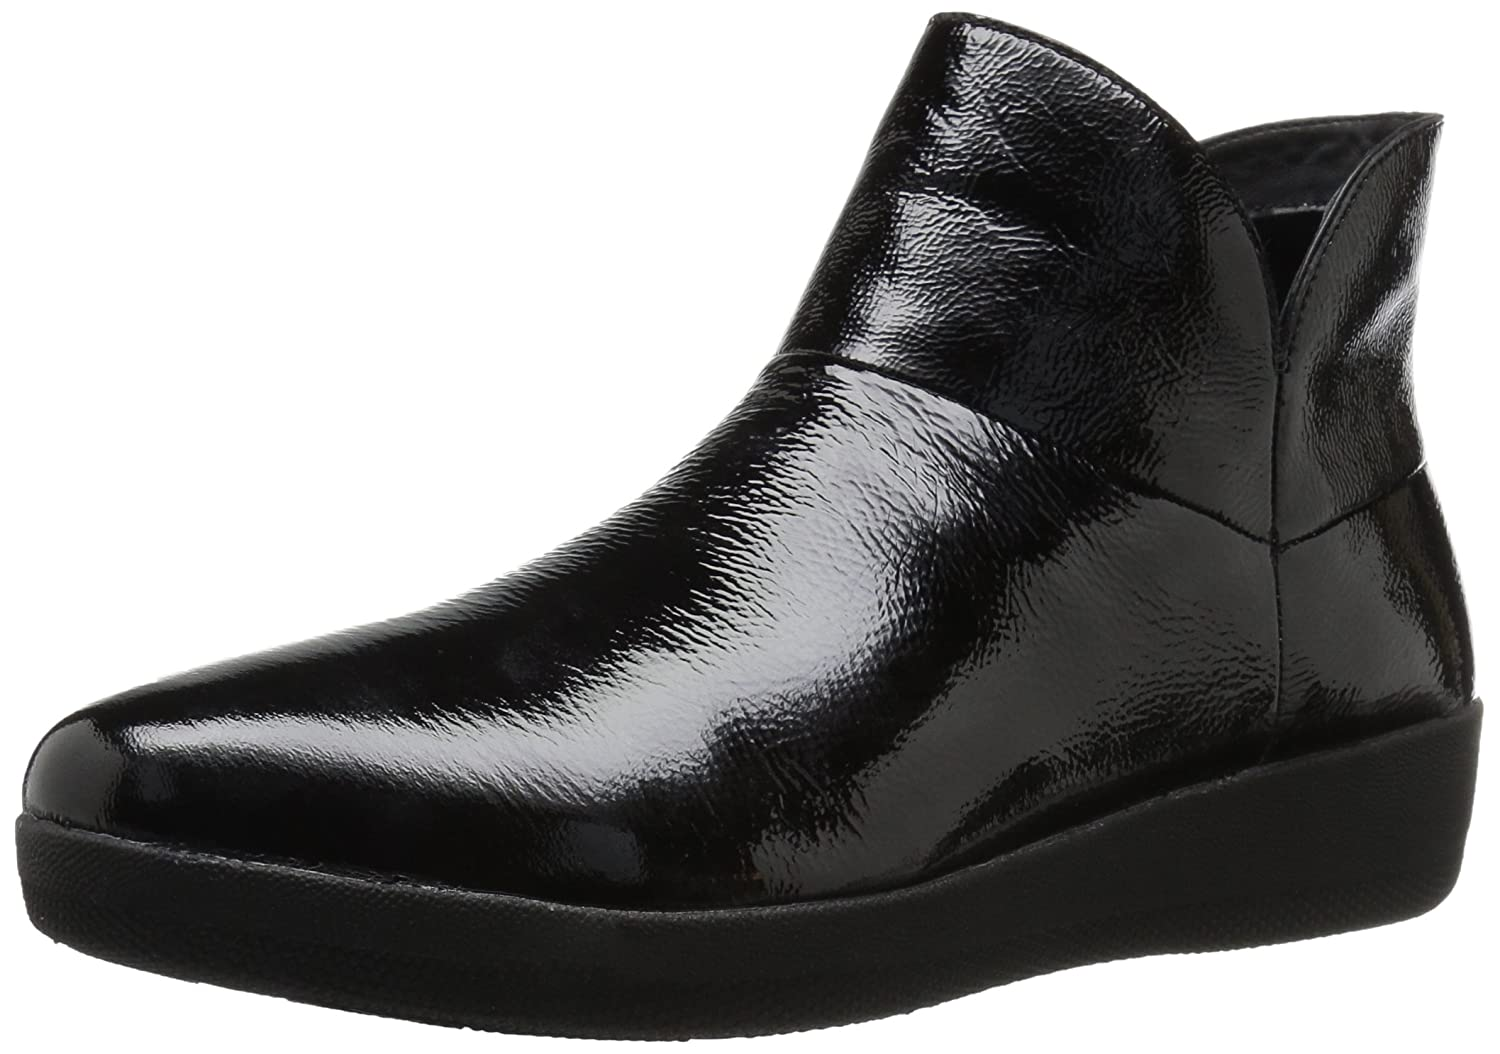 FitFlop Women's 5 Supermod Boot Ankle Bootie B01IC22EQA 5 Women's B(M) US|Black Patent be00db